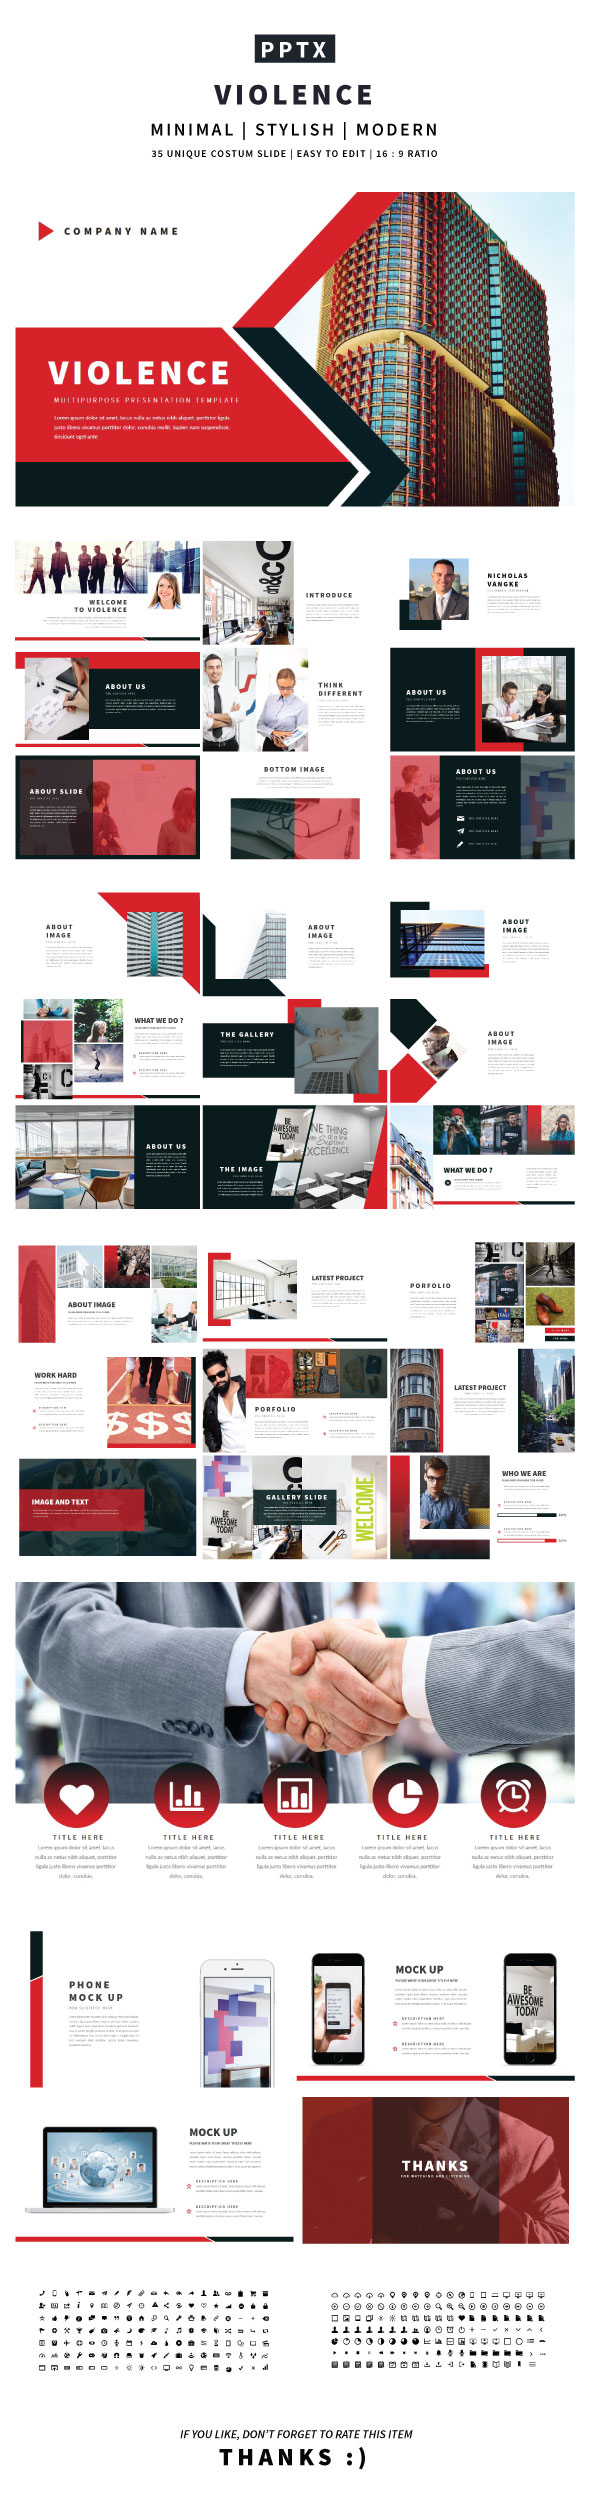 Violence Presentation Template - Creative PowerPoint Templates